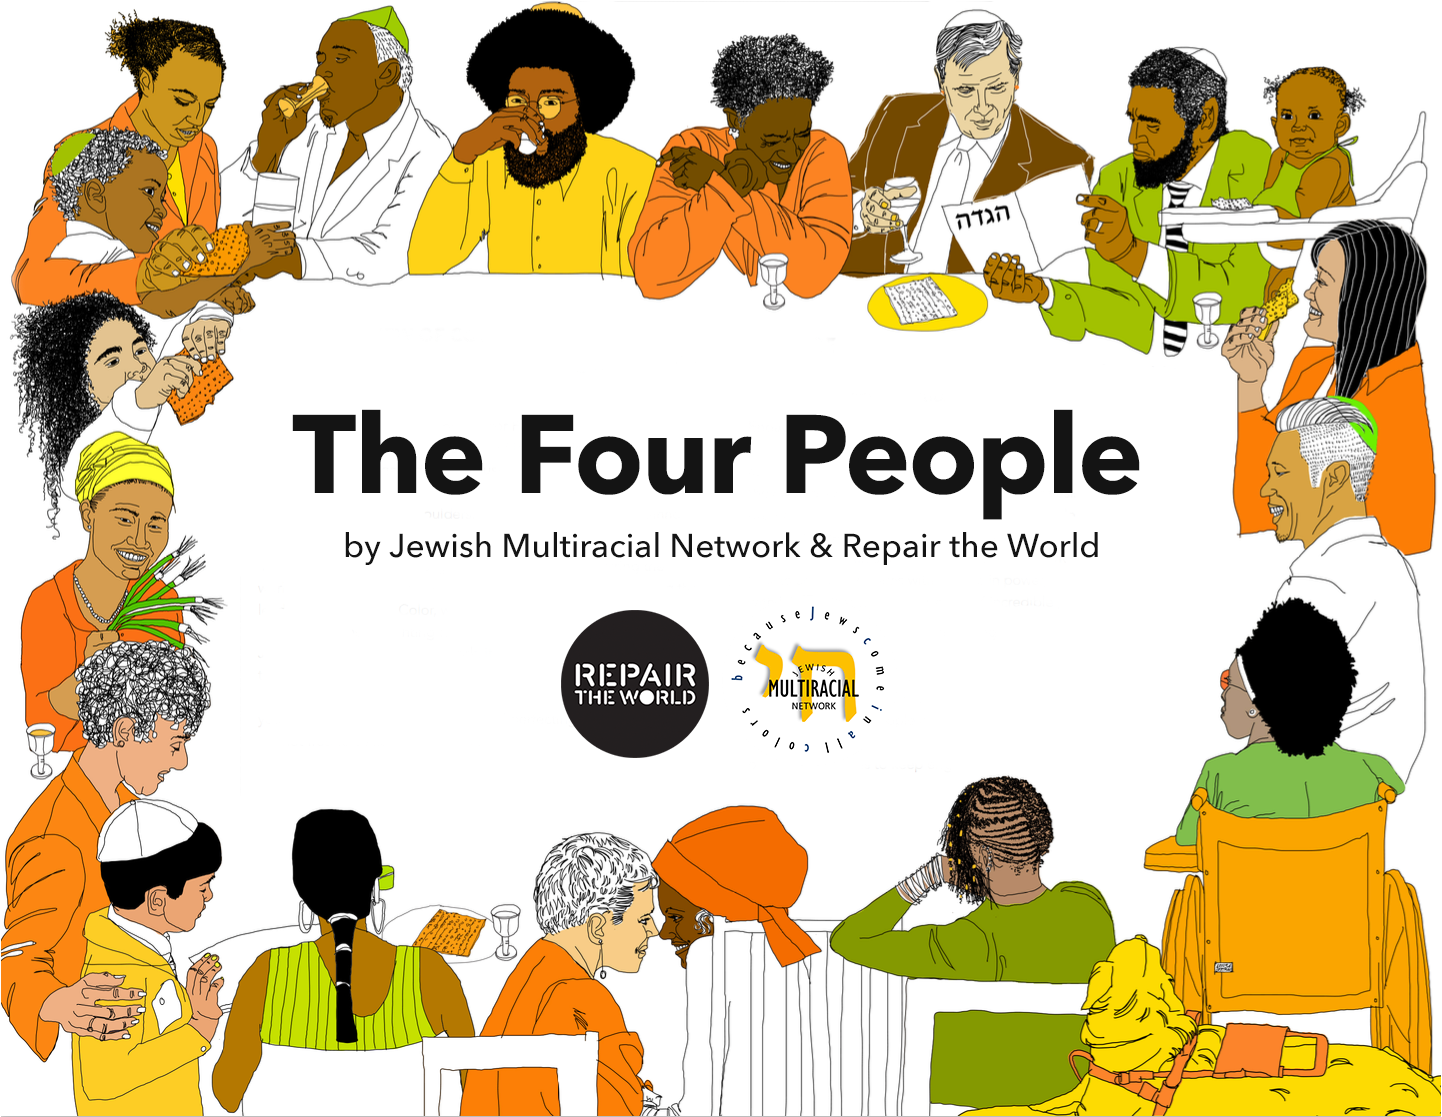 The Four People